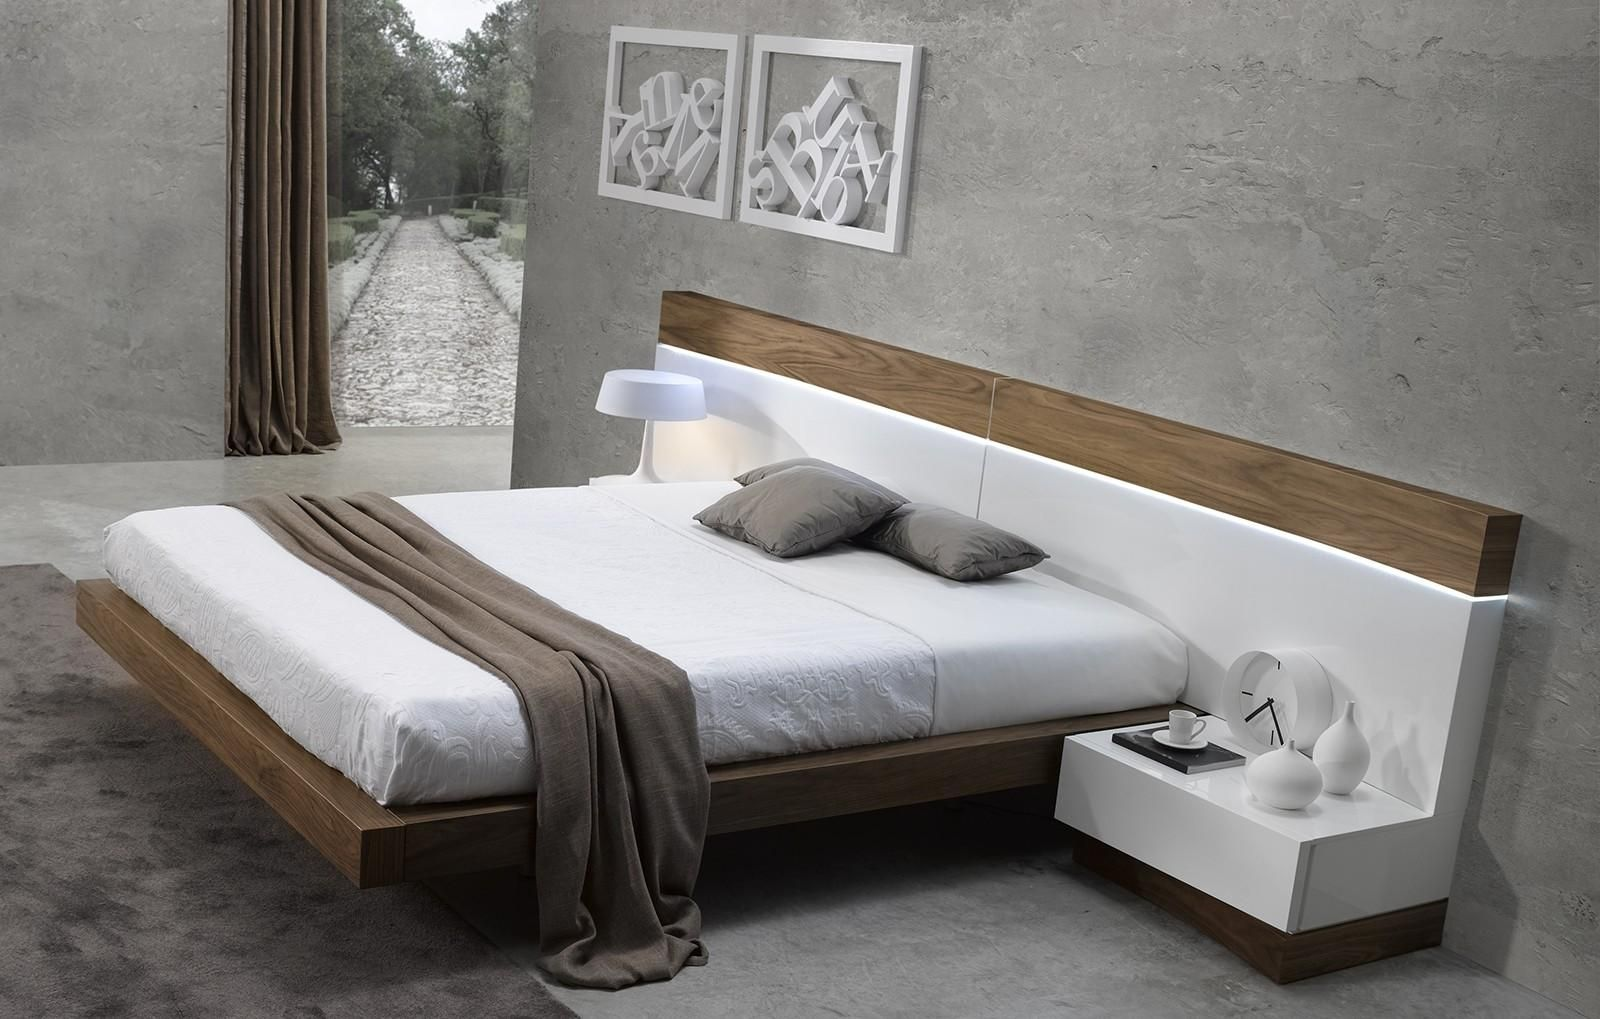 J And M Furniture 179321nsr Night Stand Appliances Connection Bedroom Furniture Design Bed Furniture Design Bedroom Bed Design